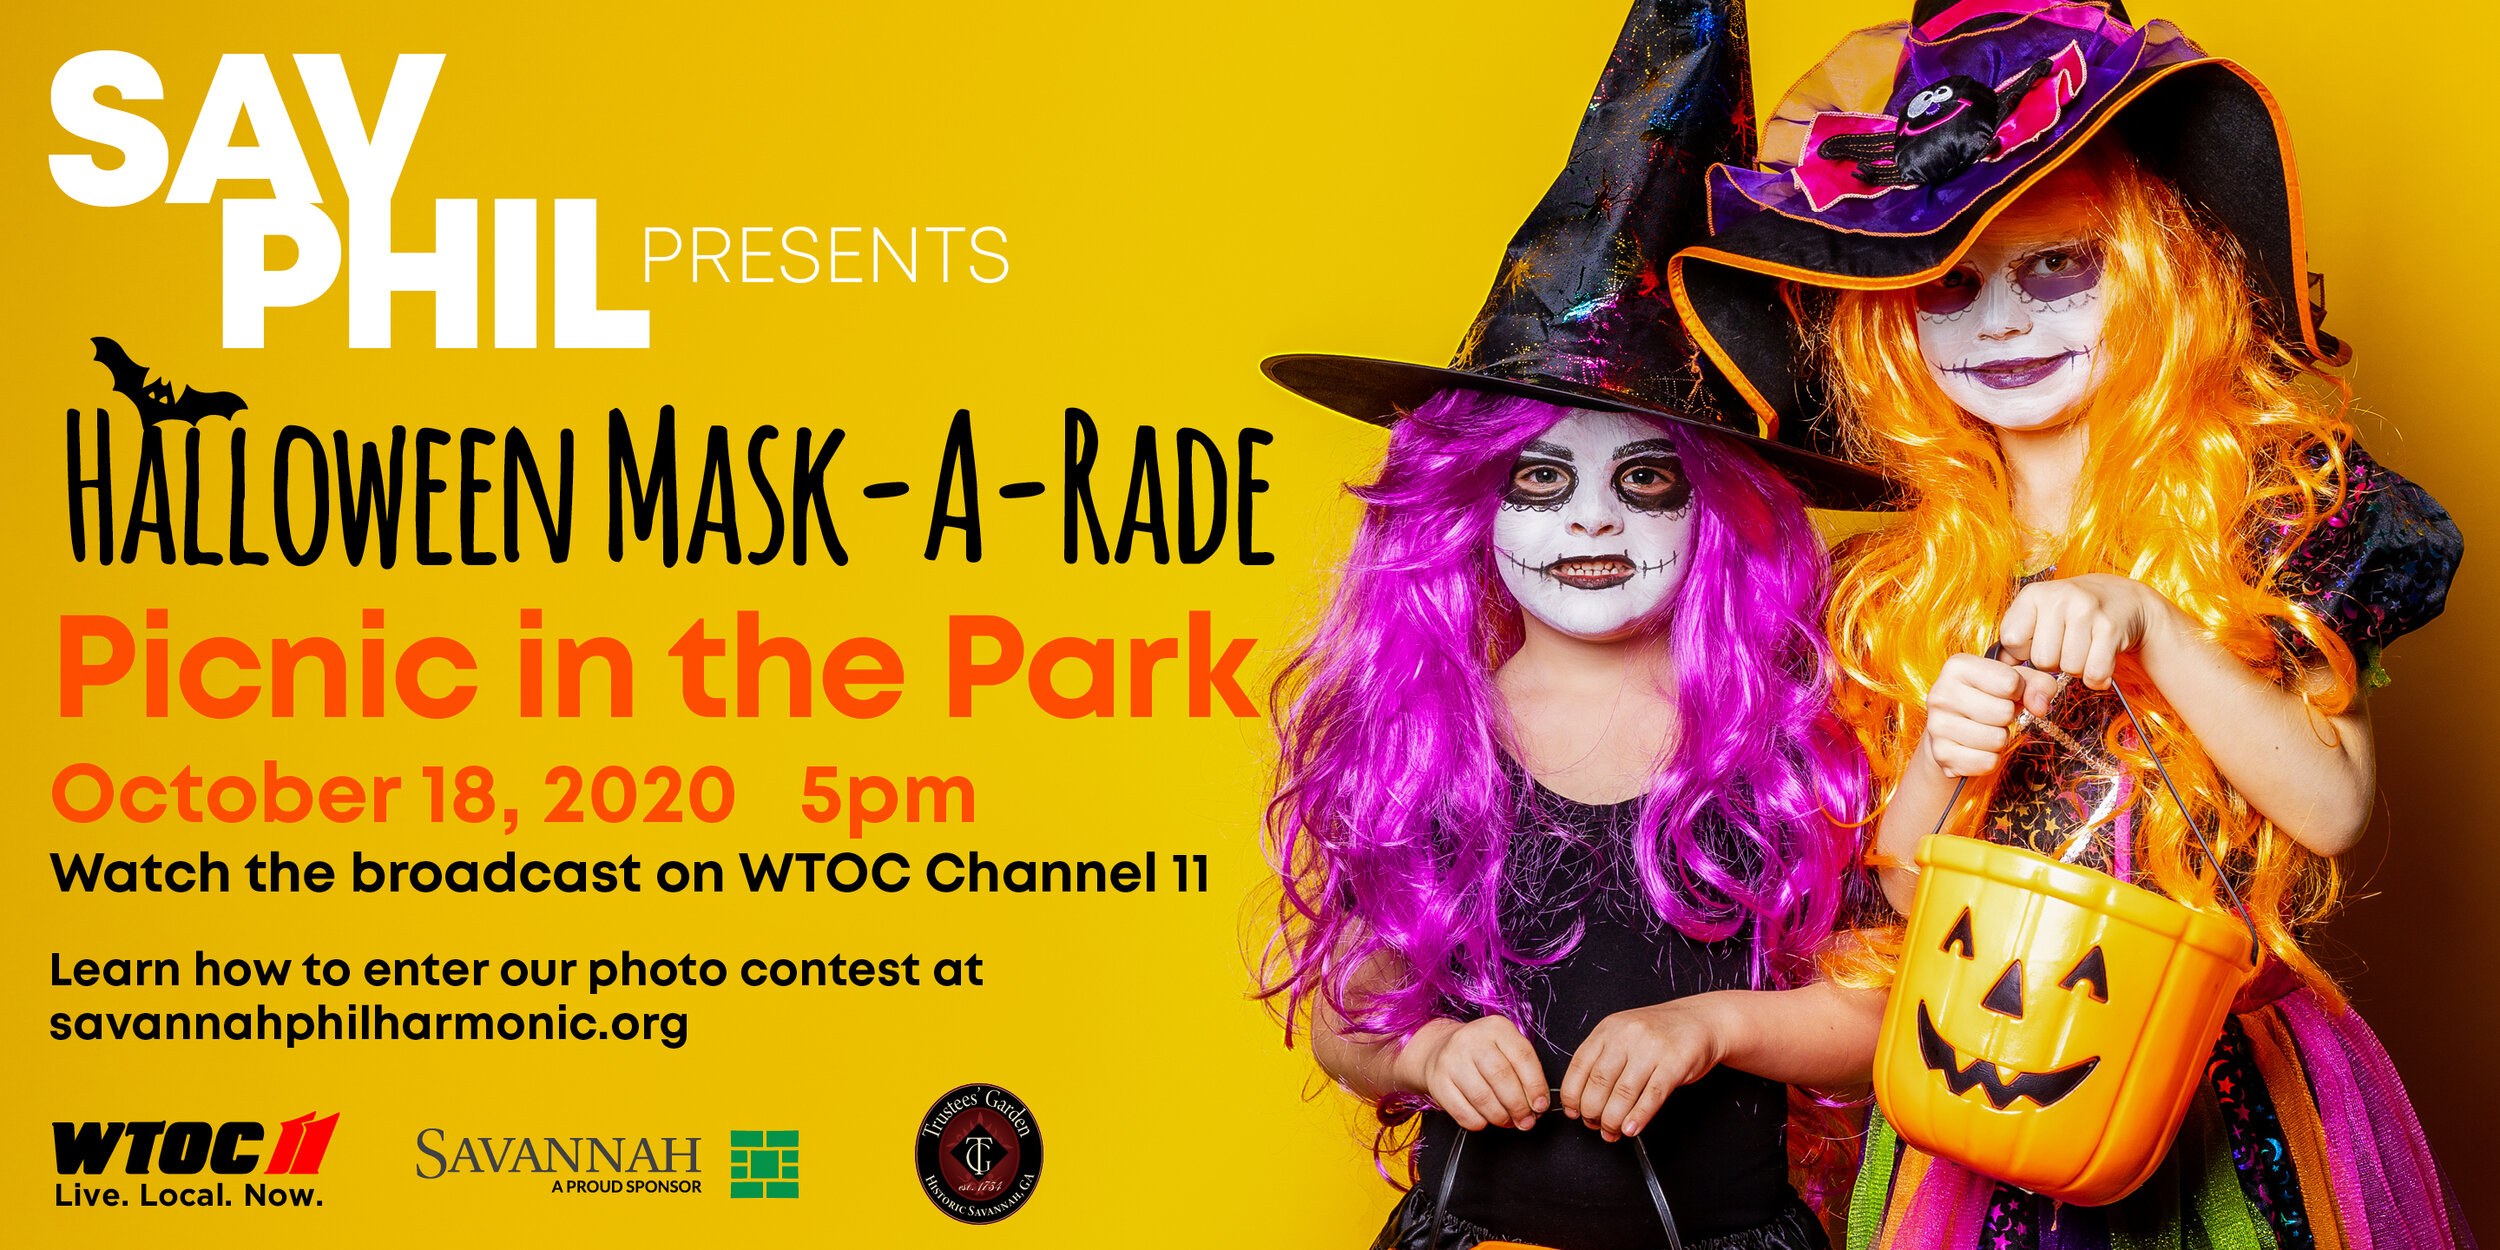 Halloween Costume Parties In Savannah Ga, 2020 Picnic in the Park 2020 — Official Guides of Savannah